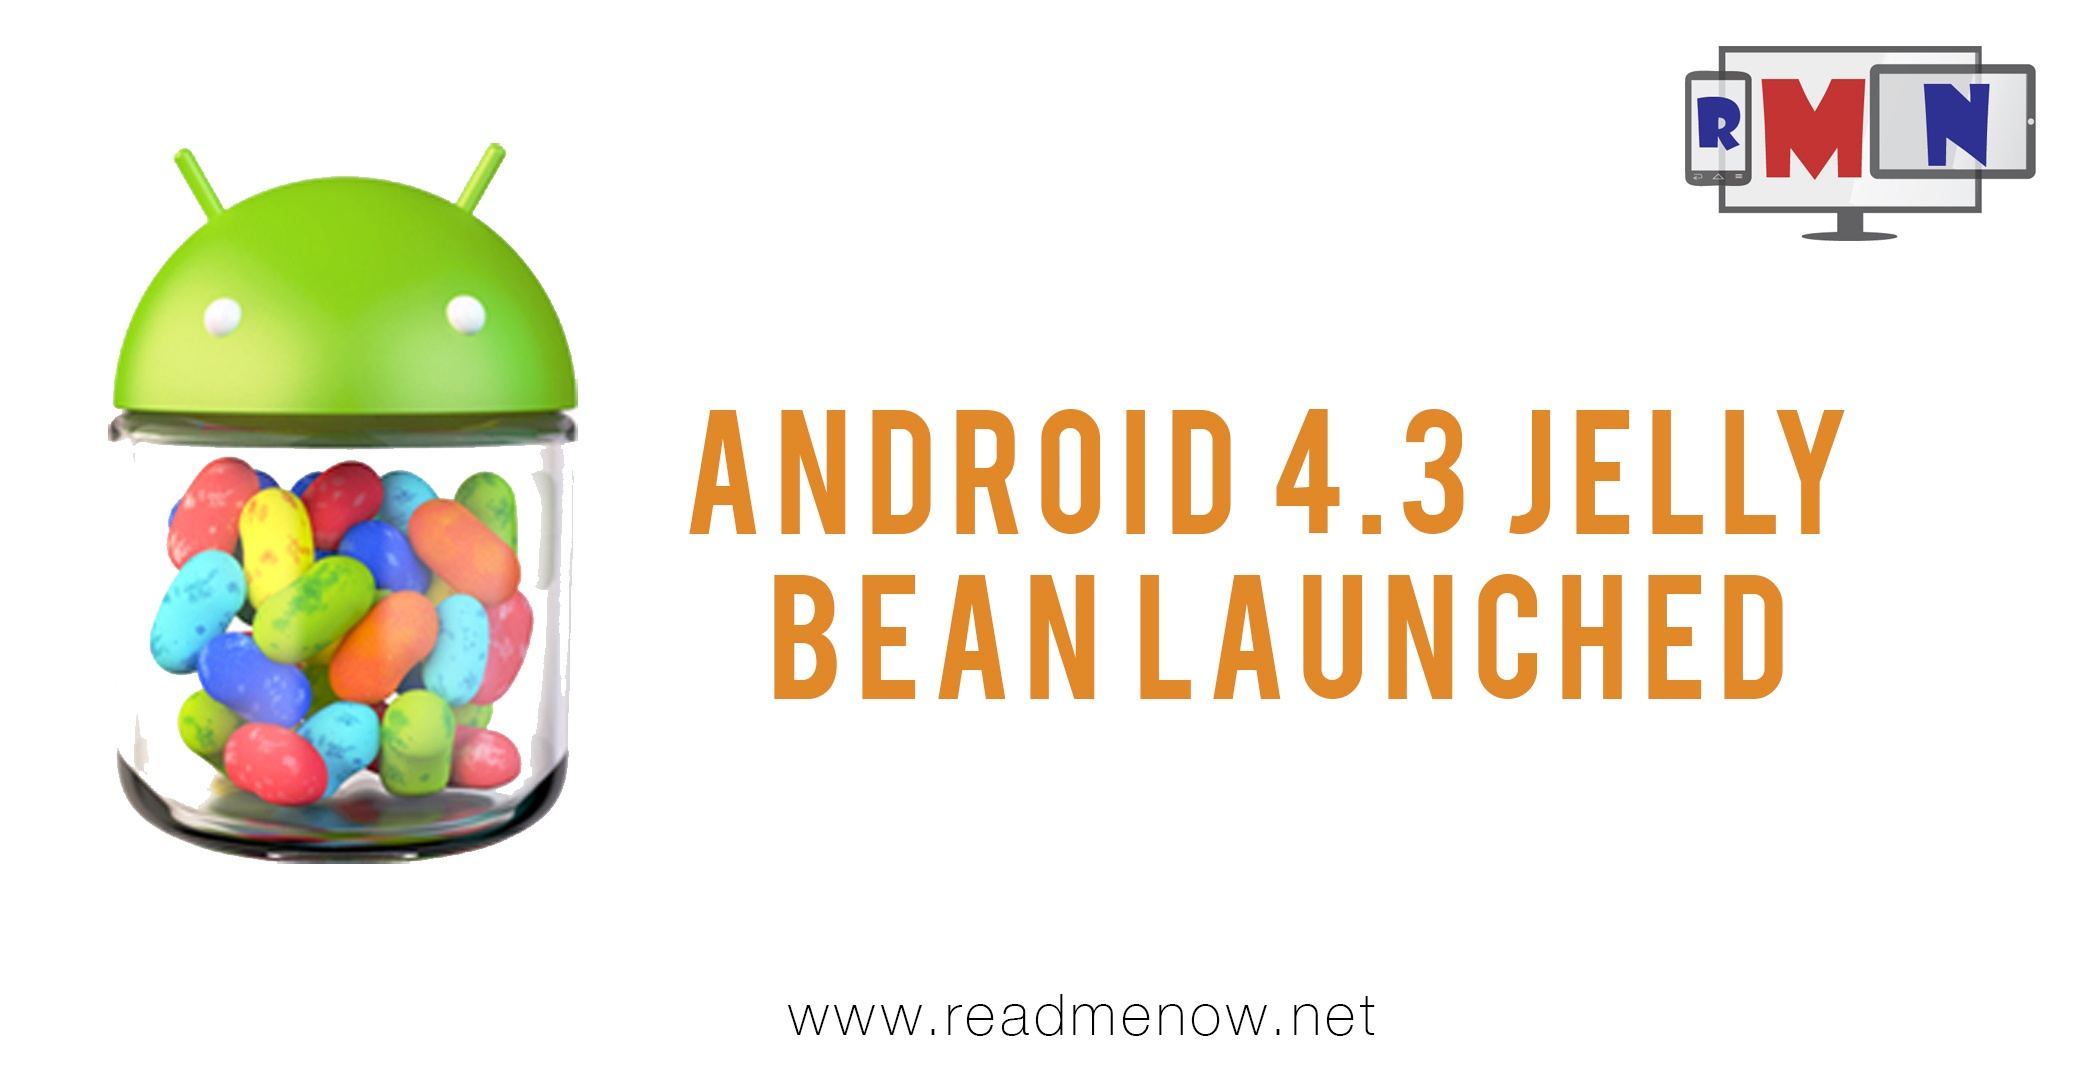 Android 4.3 Jelly Bean announced – What's New?